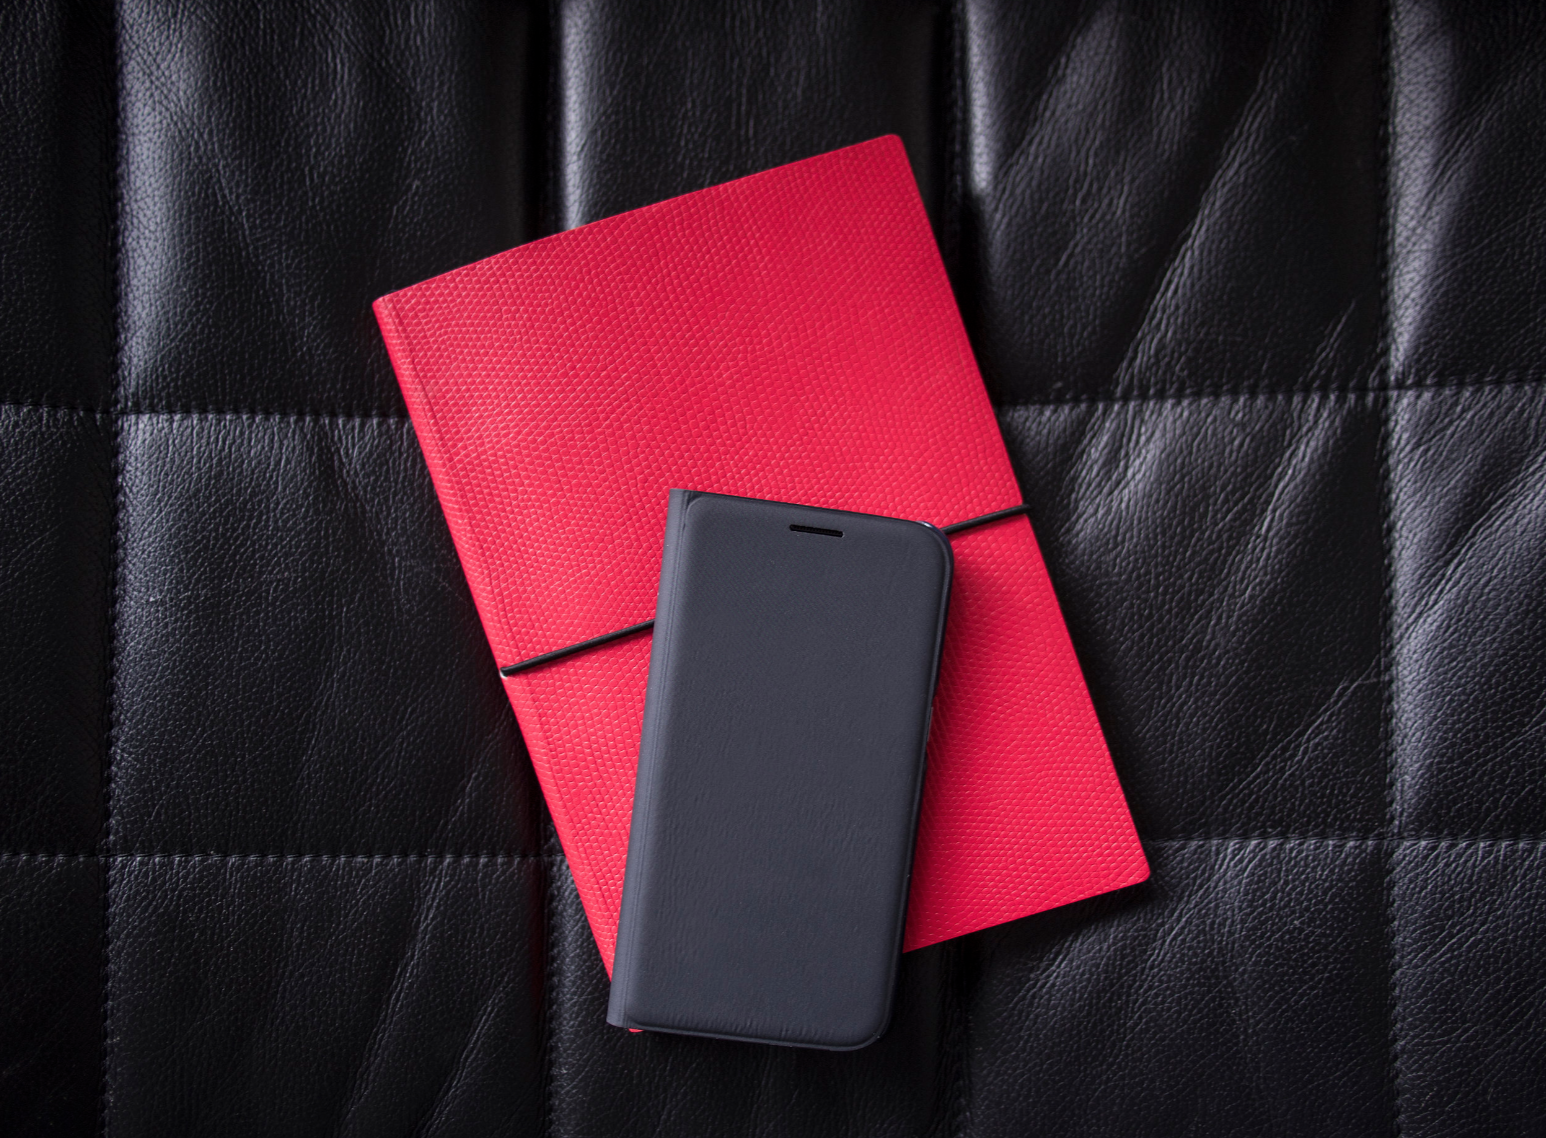 Red diary and black phone